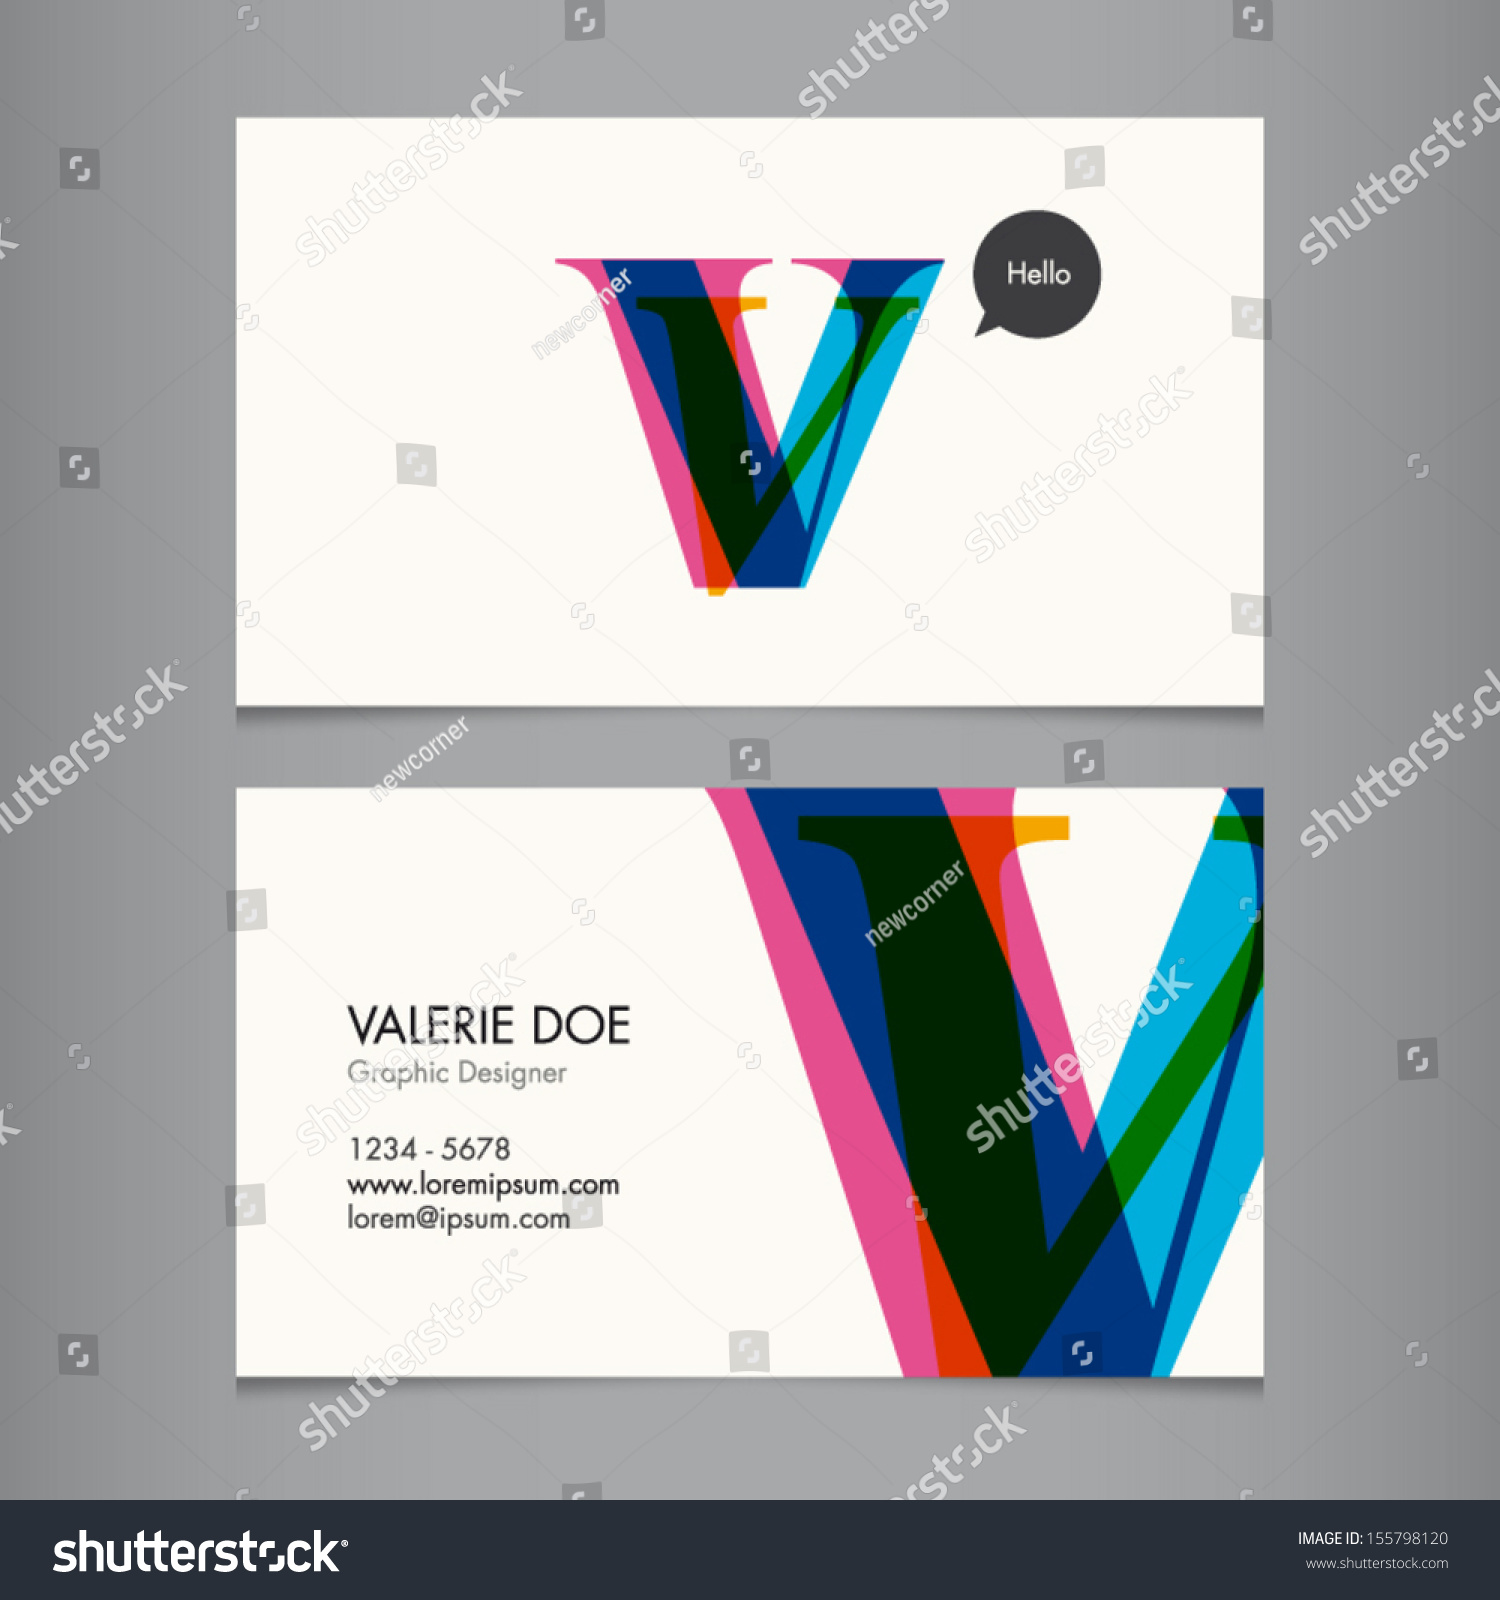 business card template letter v stock vector shutterstock